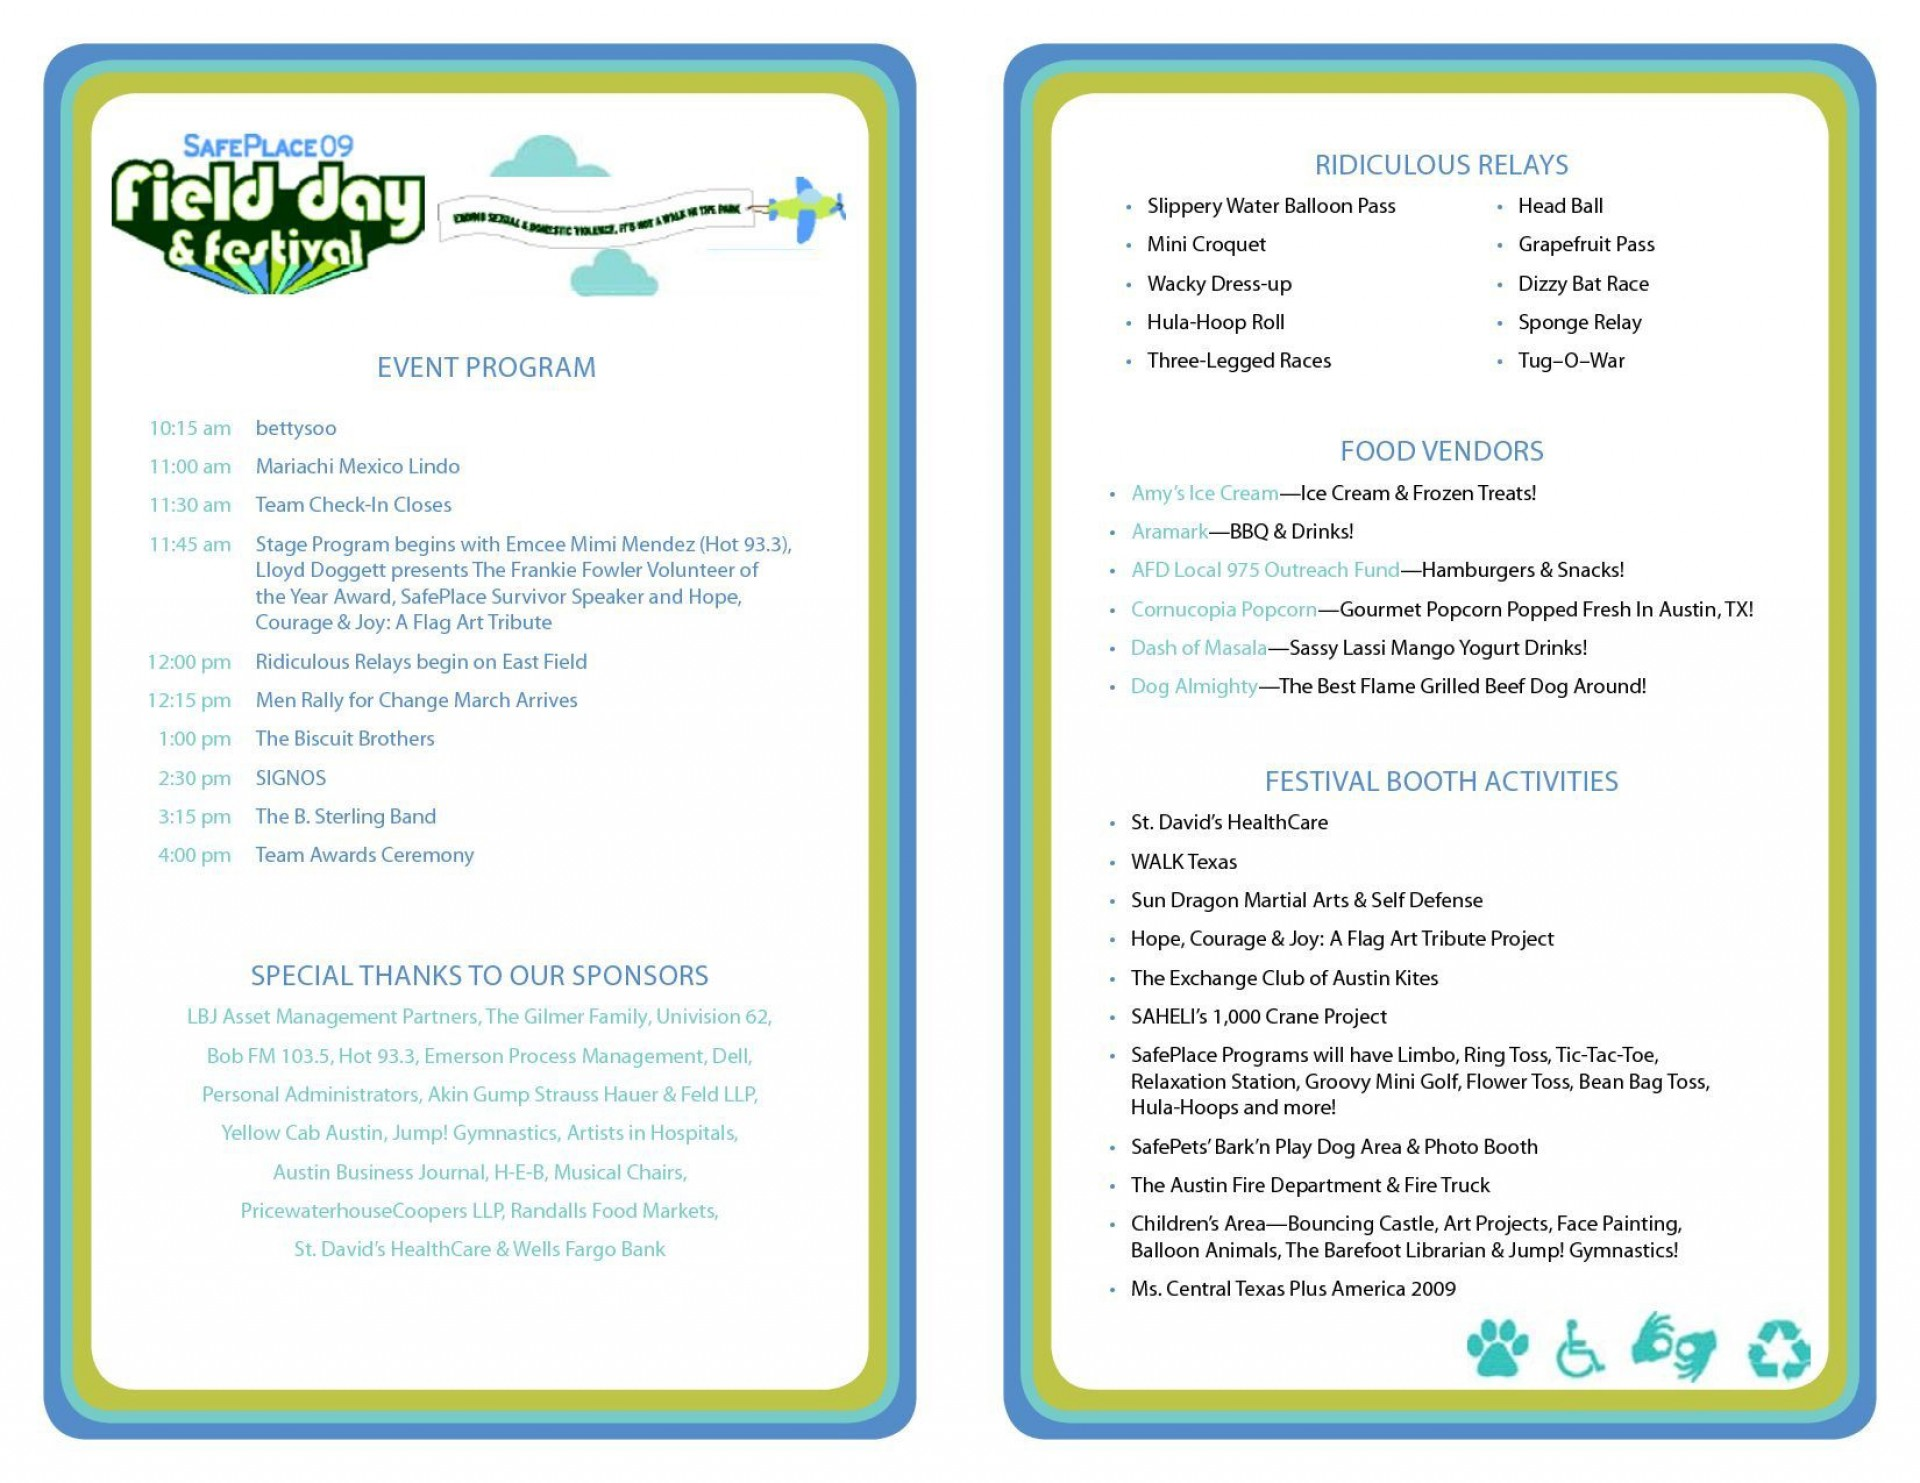 003 Breathtaking Printable Event Program Template High Definition  Free Download1920